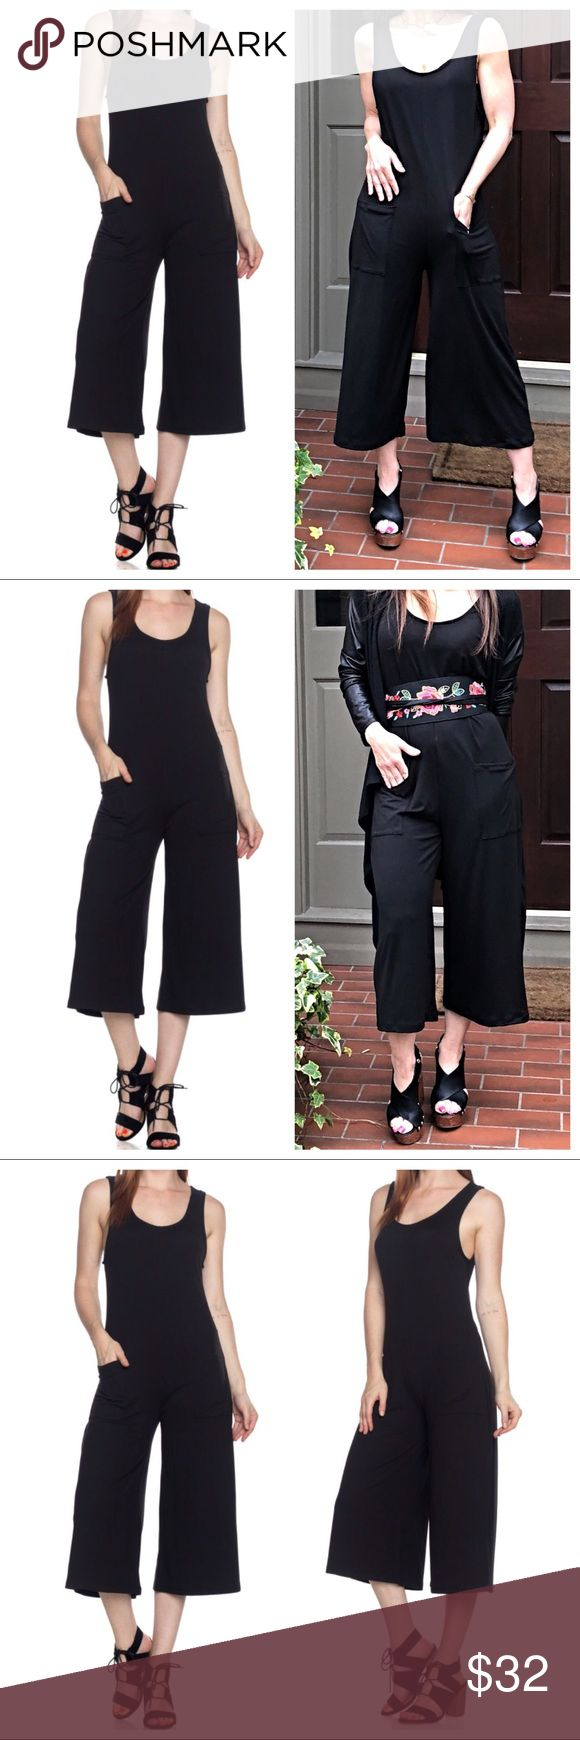 Black palazzo jumpsuit with pockets Black wide leg palazzo jumpsuit with front pockets Bust measurements laying flat on one side S 18 M 19 L 19.5 length S 48 M 49 L 49.5 Pants Jumpsuits & Rompers